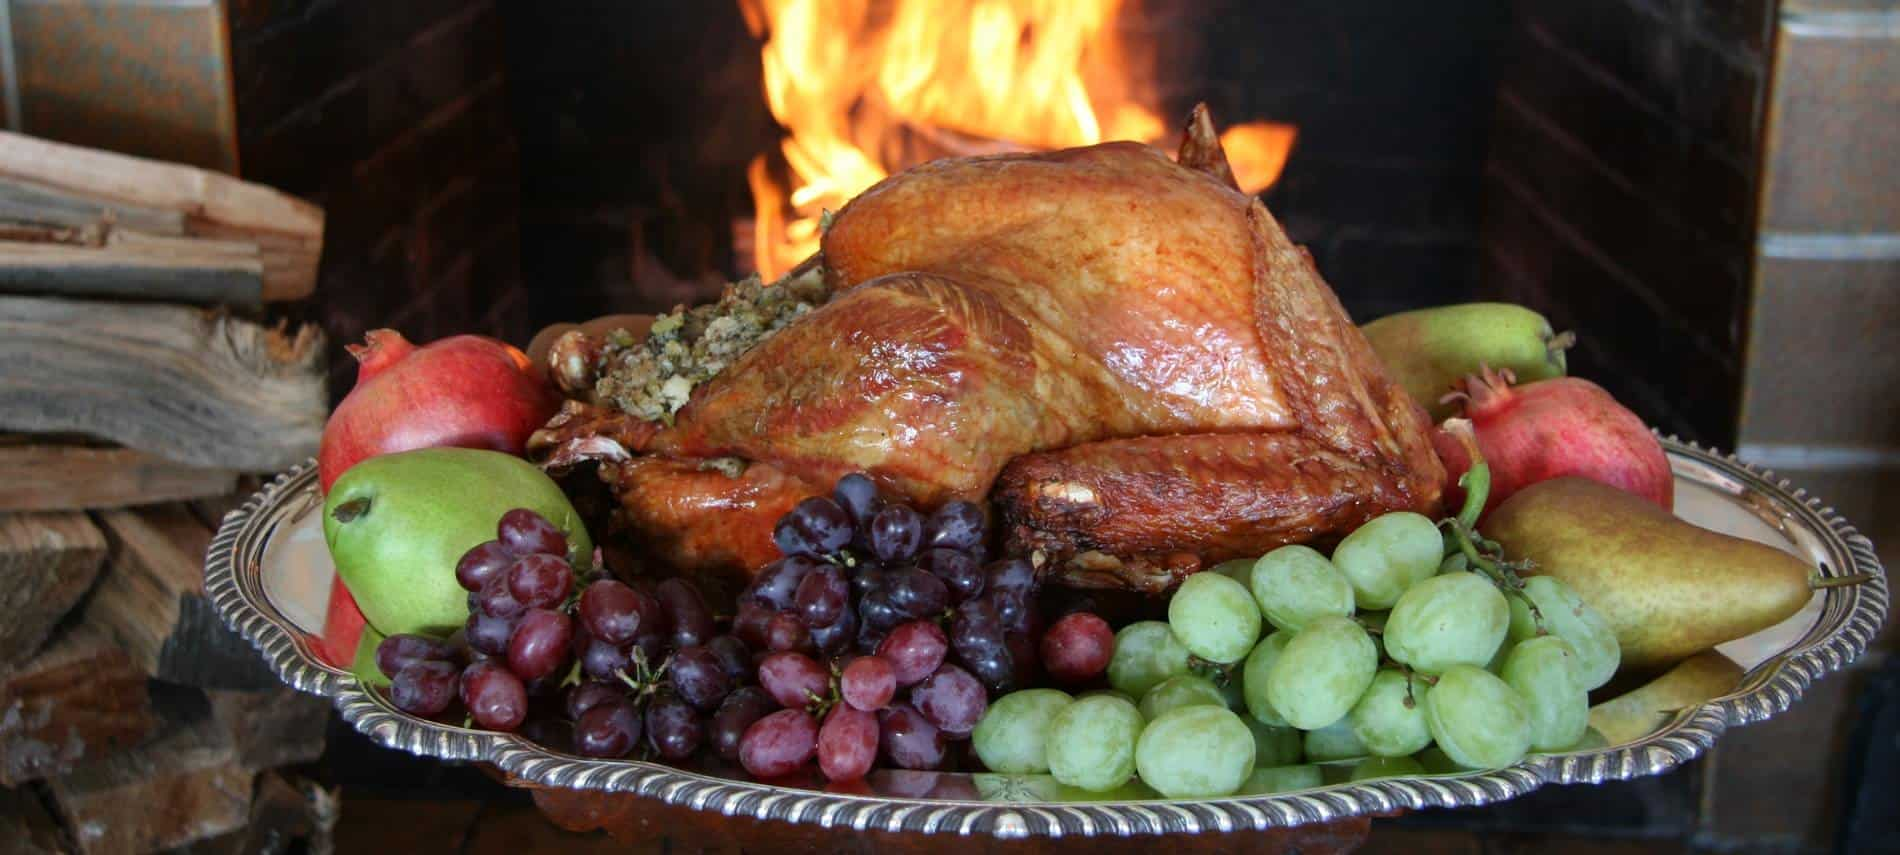 Round silver platter topped with a glistening golden stuffed turkey surrounded by fresh apples, pears and grapes